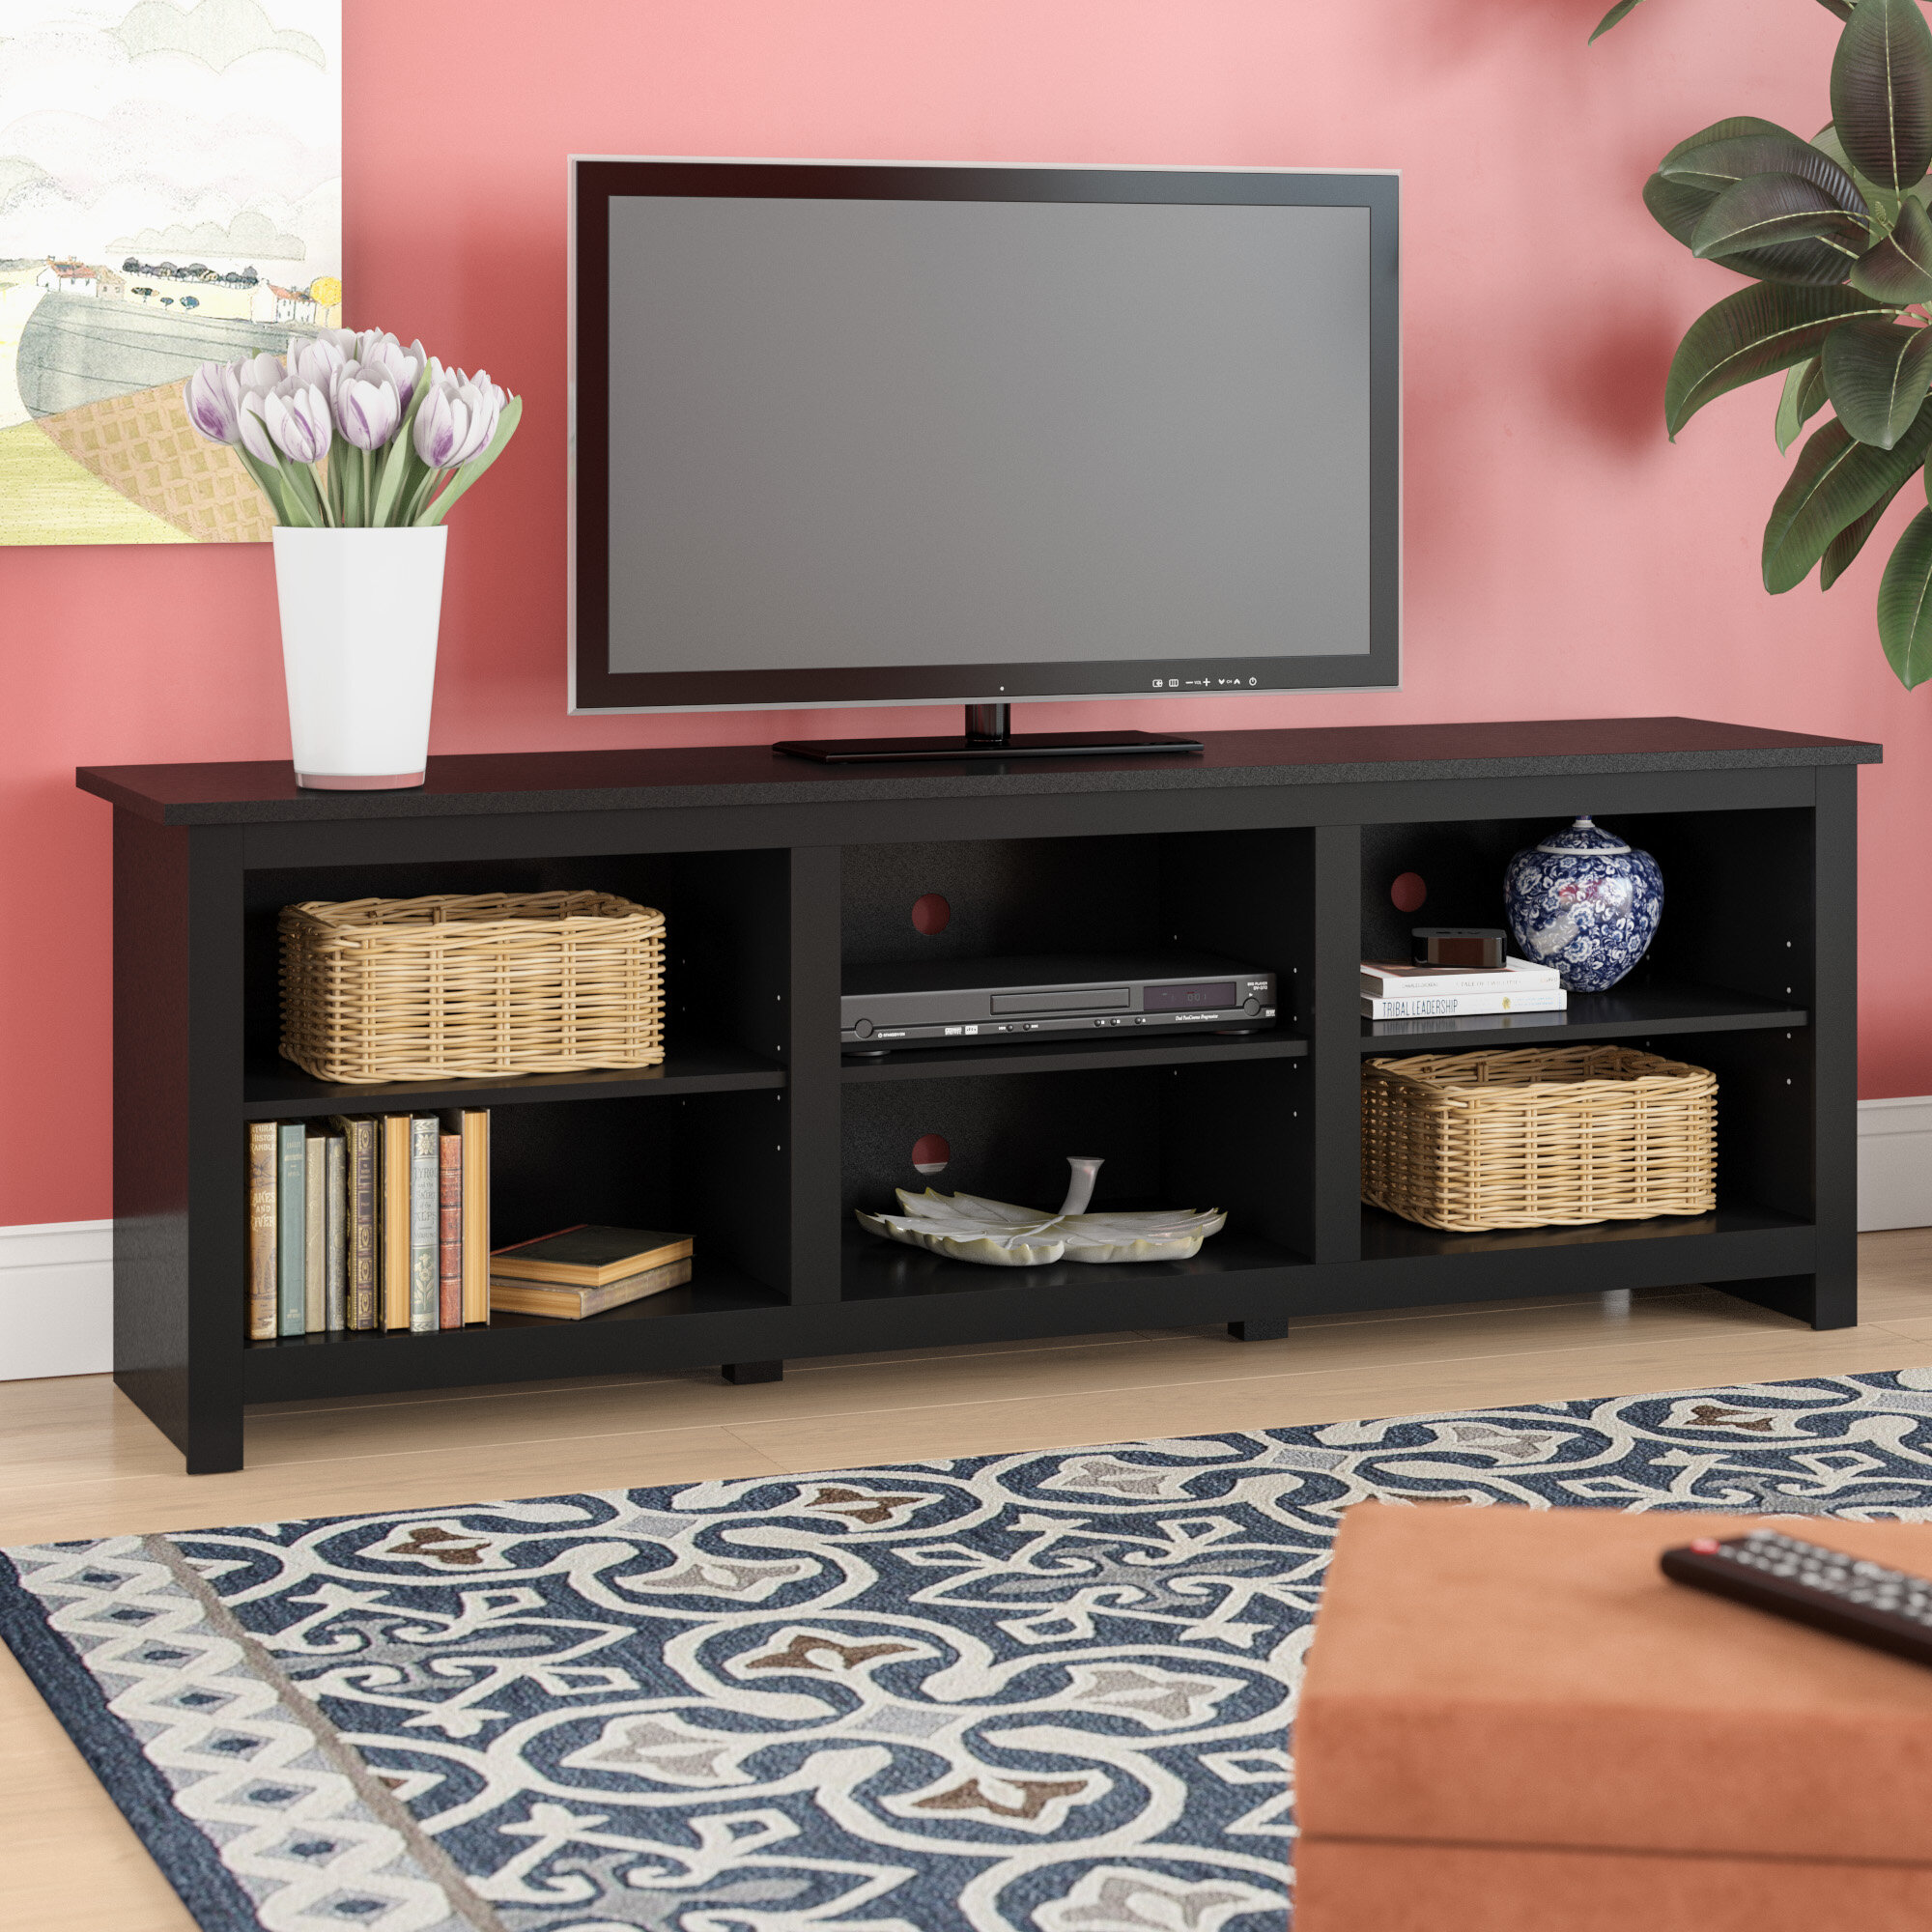 Dionysios TV Stand for TVs up to 78 inches